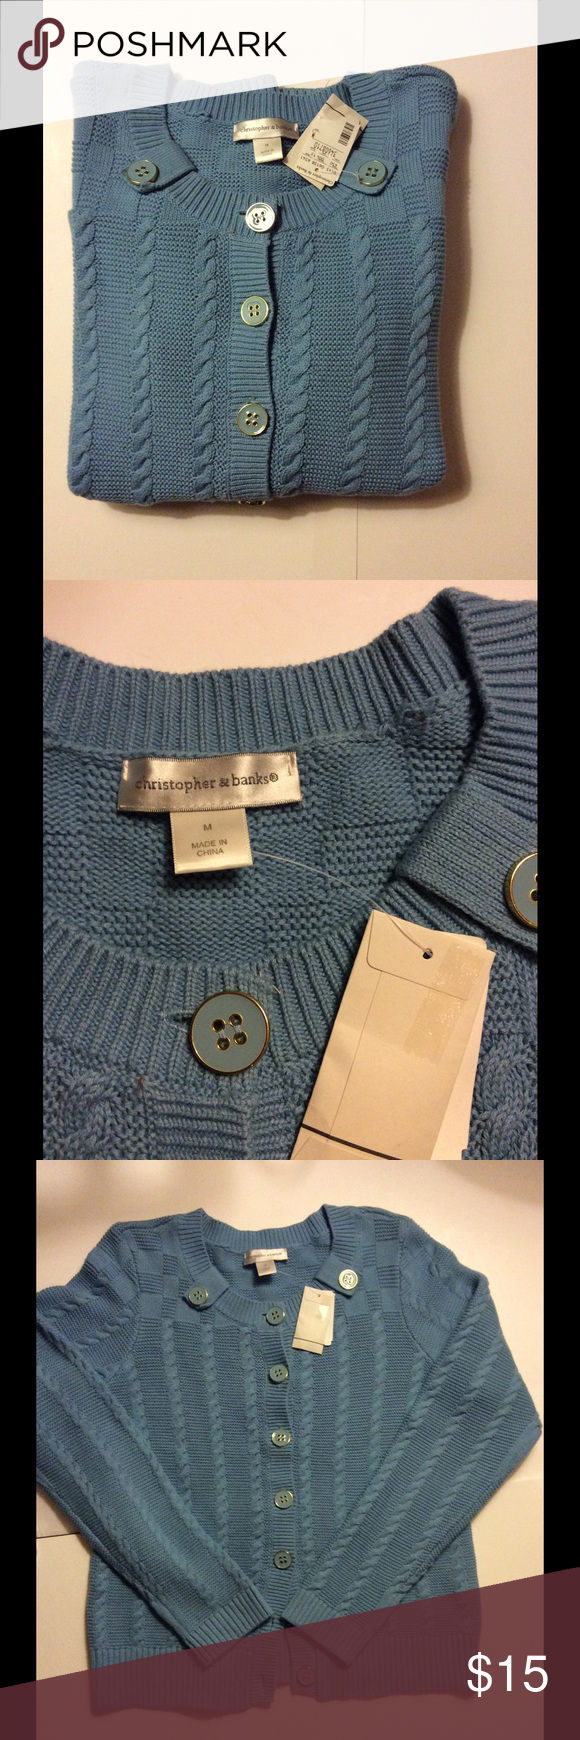 NWT Blue Button Down Cable Knit Sweater Size M ❄ NWT | Cable ...